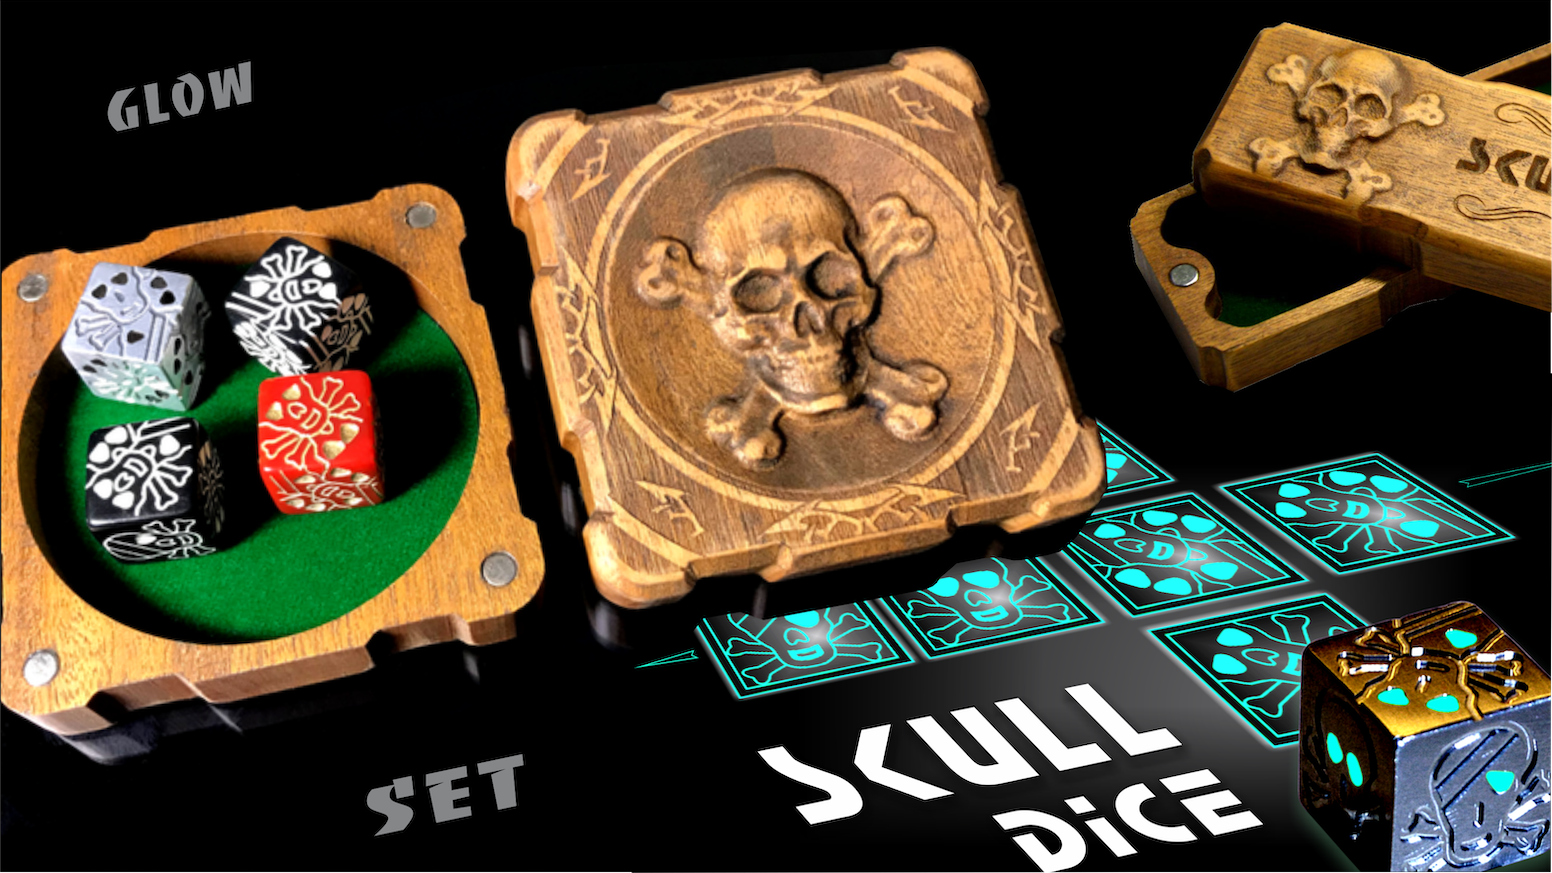 Collectible set with one-eyed skull in a wooden case. The combination of technology, rare materials and design for Board game fans